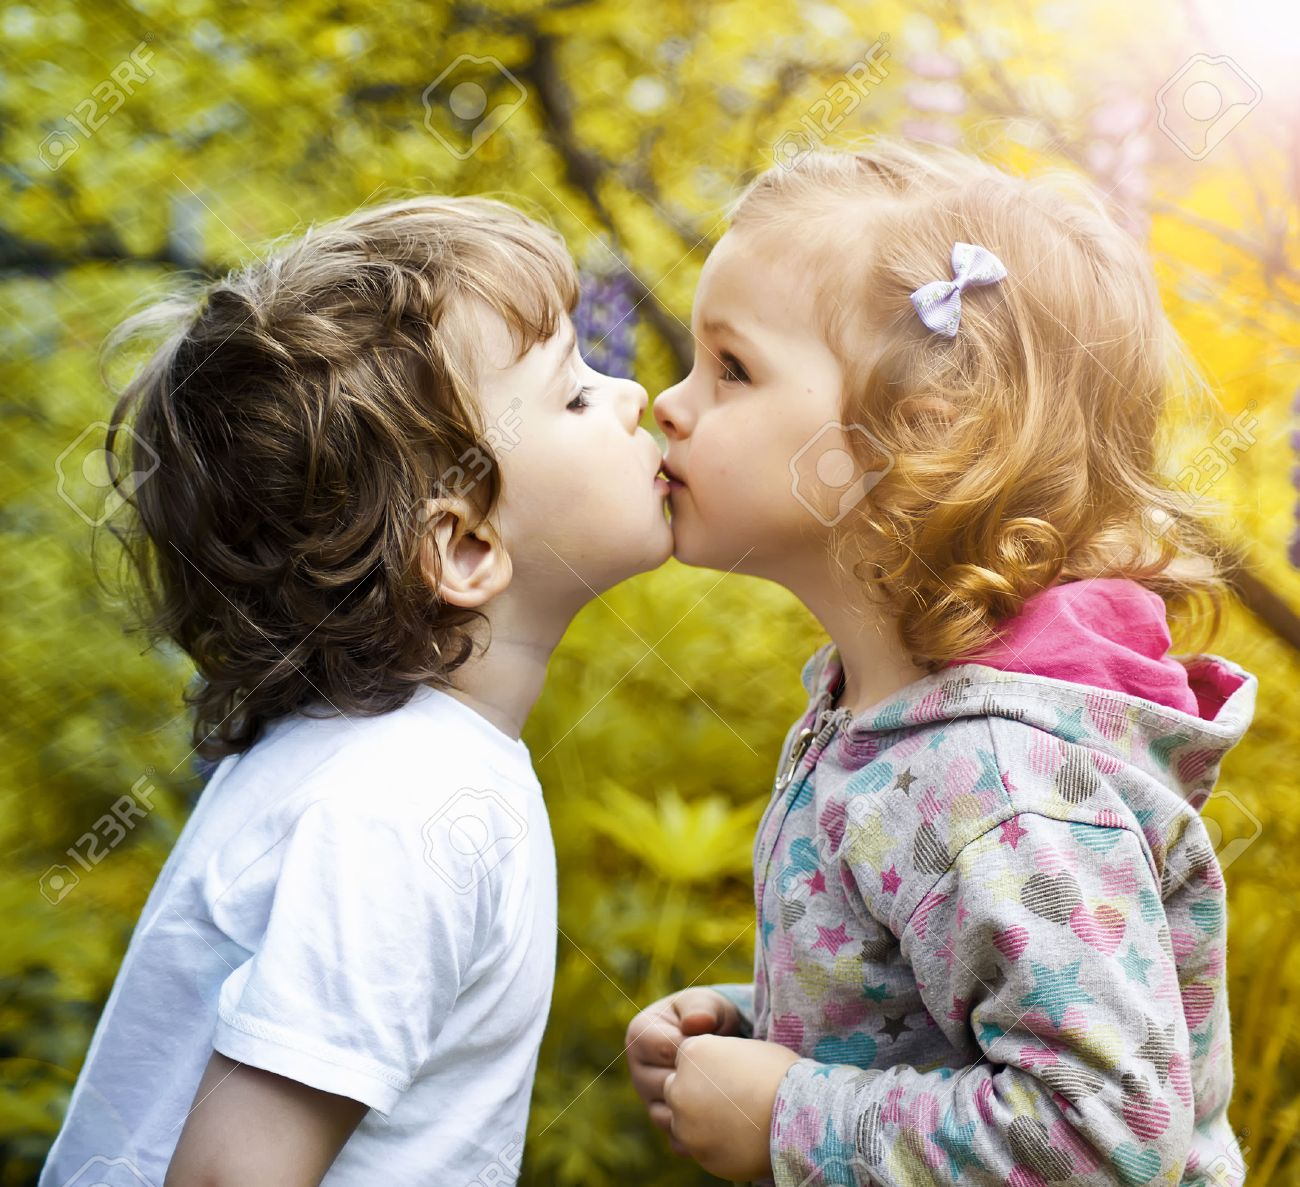 Little boy kissing a girl stock photo picture and royalty free little boy kissing a girl stock photo 22427954 altavistaventures Images